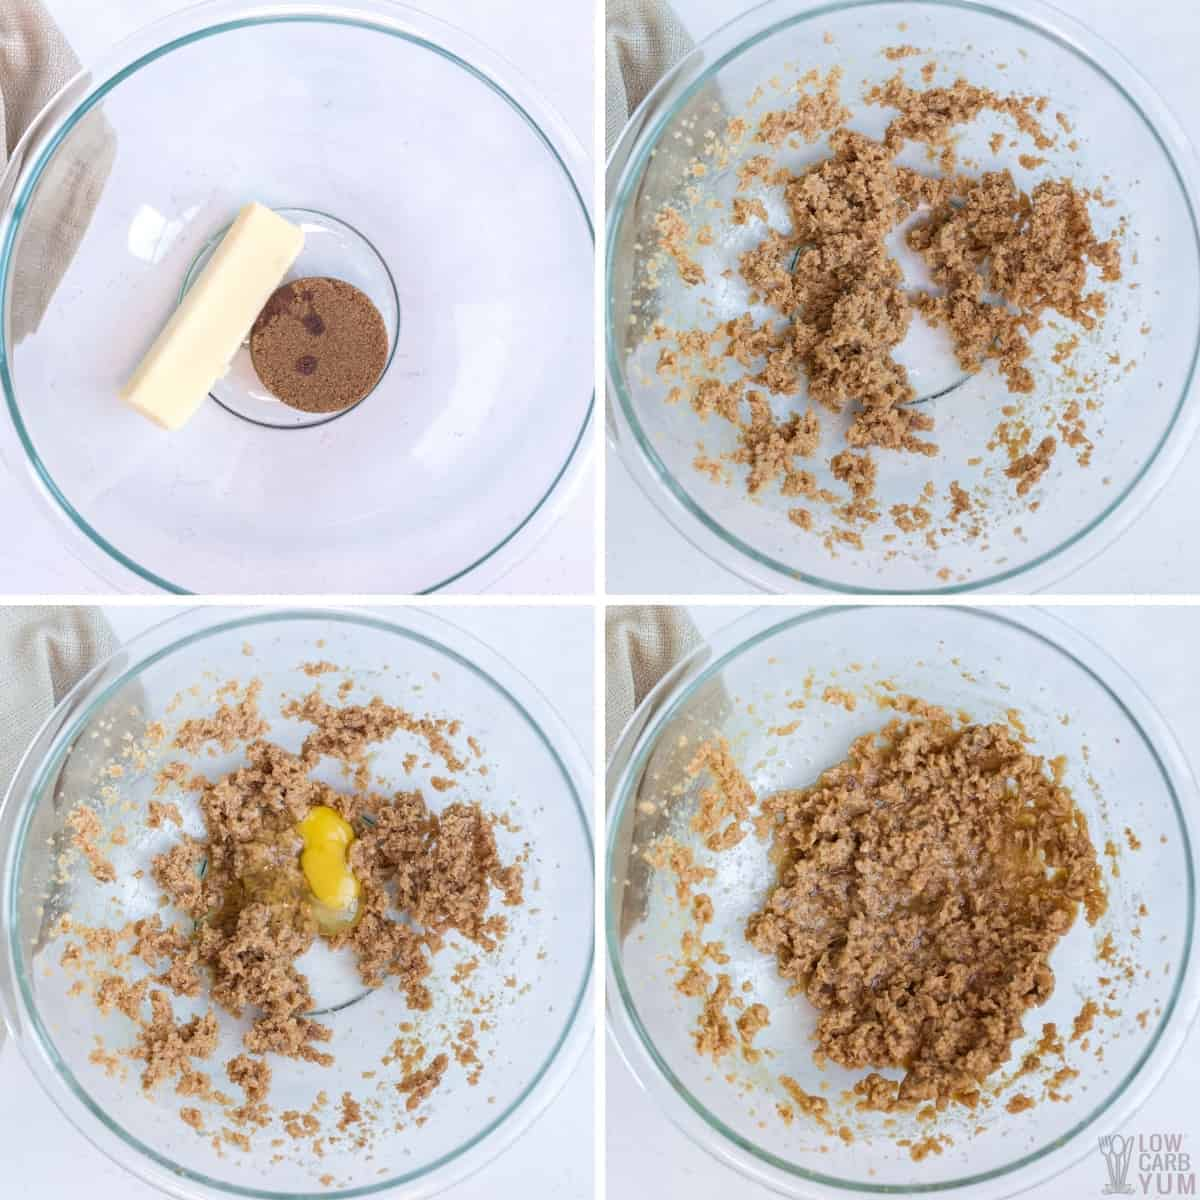 combining butter sweeteners and egg